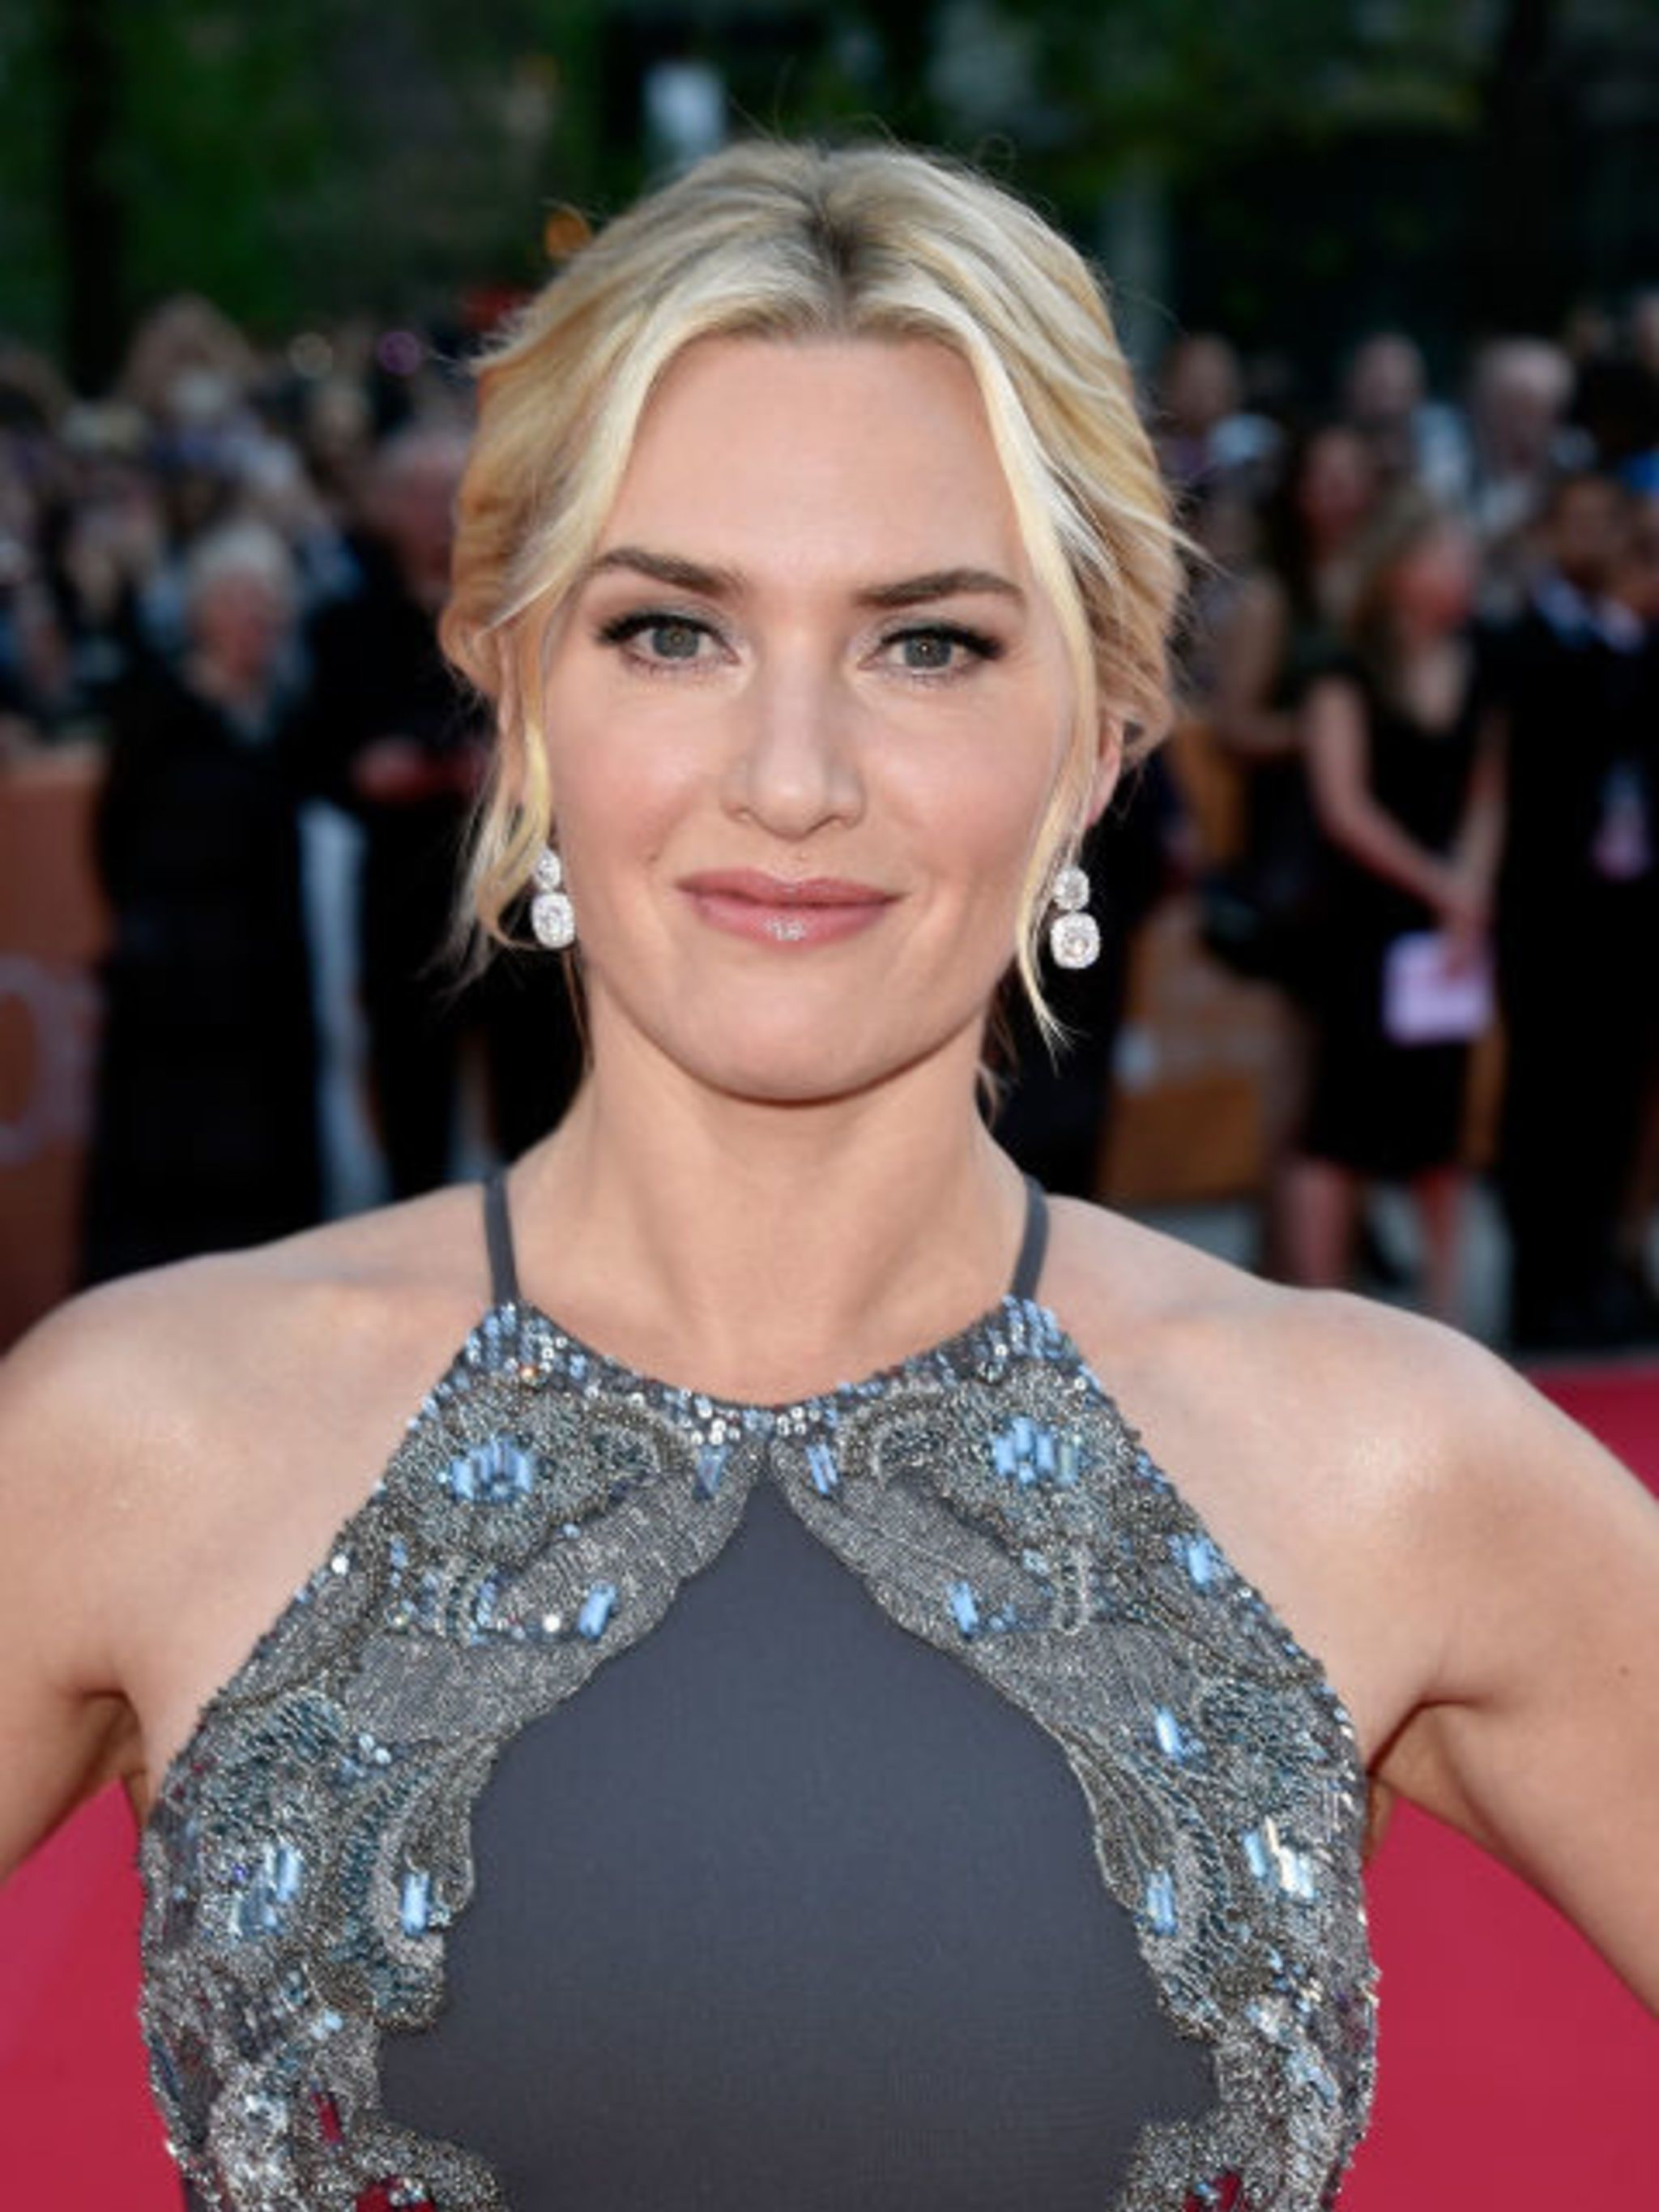 """<p><strong>KATE WINSLET ISN'T TOO KEEN ON HER PORTRAYAL OF ROSE IN 'TITANIC'</strong></p>  <p>Even though Kate doesn't hate<em>Titanic</em>the film, she's not too thrilled with her performance as Rose when looking back. """"Every single scene, I'm like 'R"""